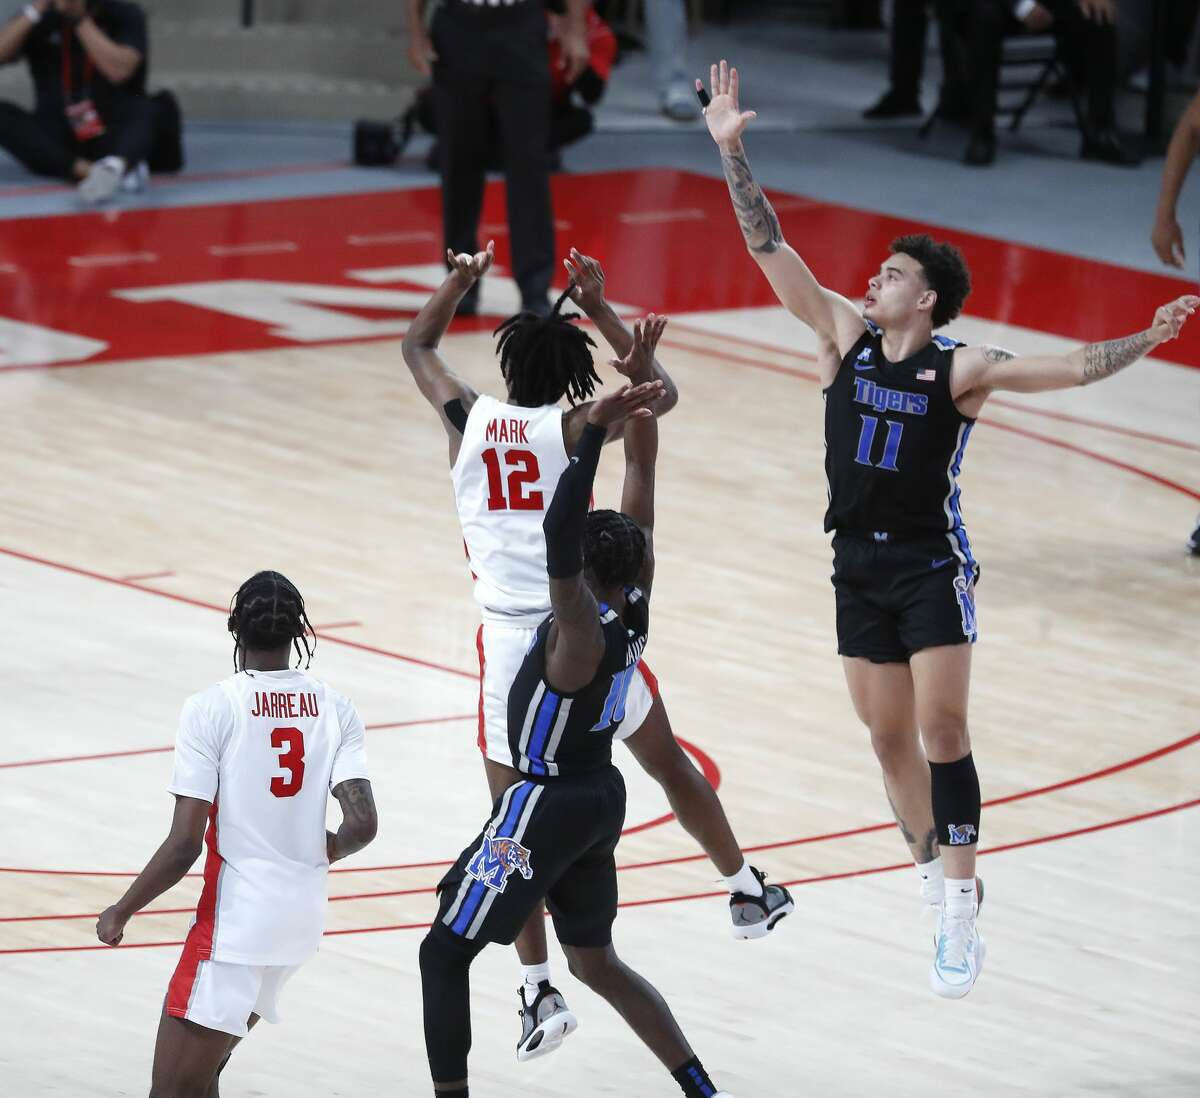 Houston Cougars guard Tramon Mark (12) shoots his game-winning three-pointer at the buzzer as Cougars beat Memphis Tigers 64-76 during the second half of an NCAA Men's basketball game at the Fertitta Center, Sunday, March 7, 2021, in Houston.